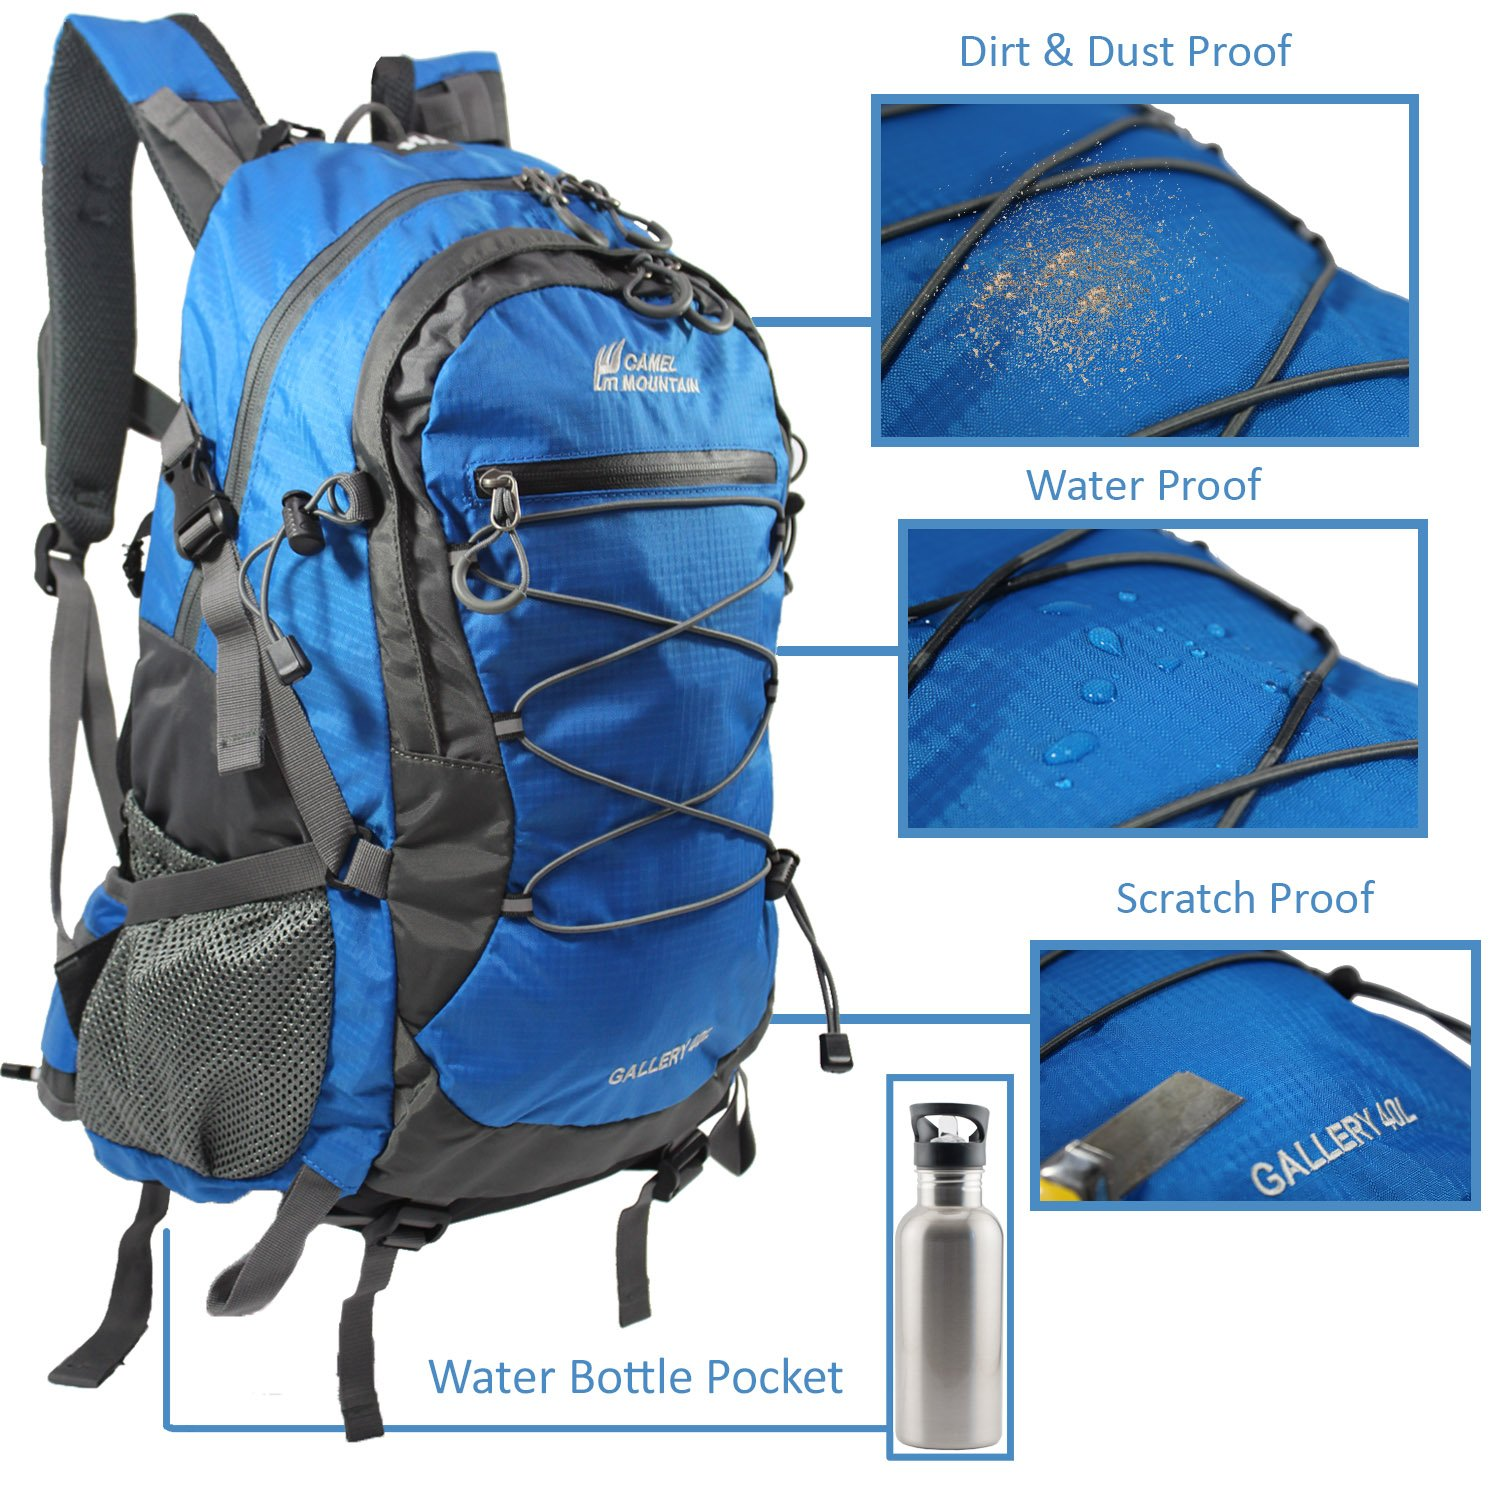 cb056cd1efa Amazon.com : Camel Mountain Hiking & Camping Backpack, Anti-Theft Backpack,  Fits 13'-17' Laptop Multipurpose (Blue) : Sports & Outdoors